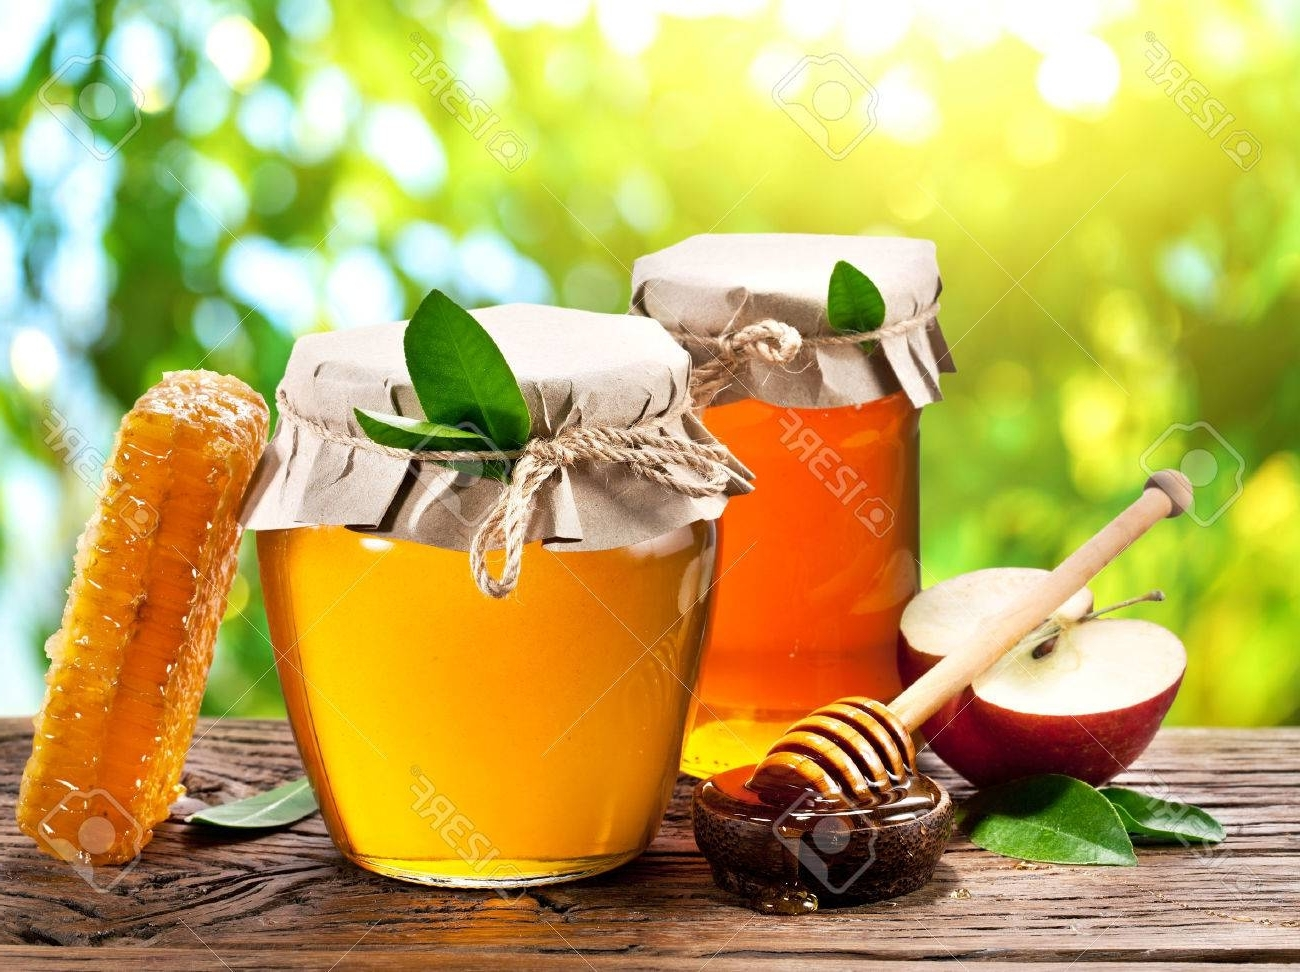 Glass Cans Full Of Honey, Apples And Combs On Old Wooden Table Pertaining To Latest Combs Cocktail Tables (View 7 of 20)